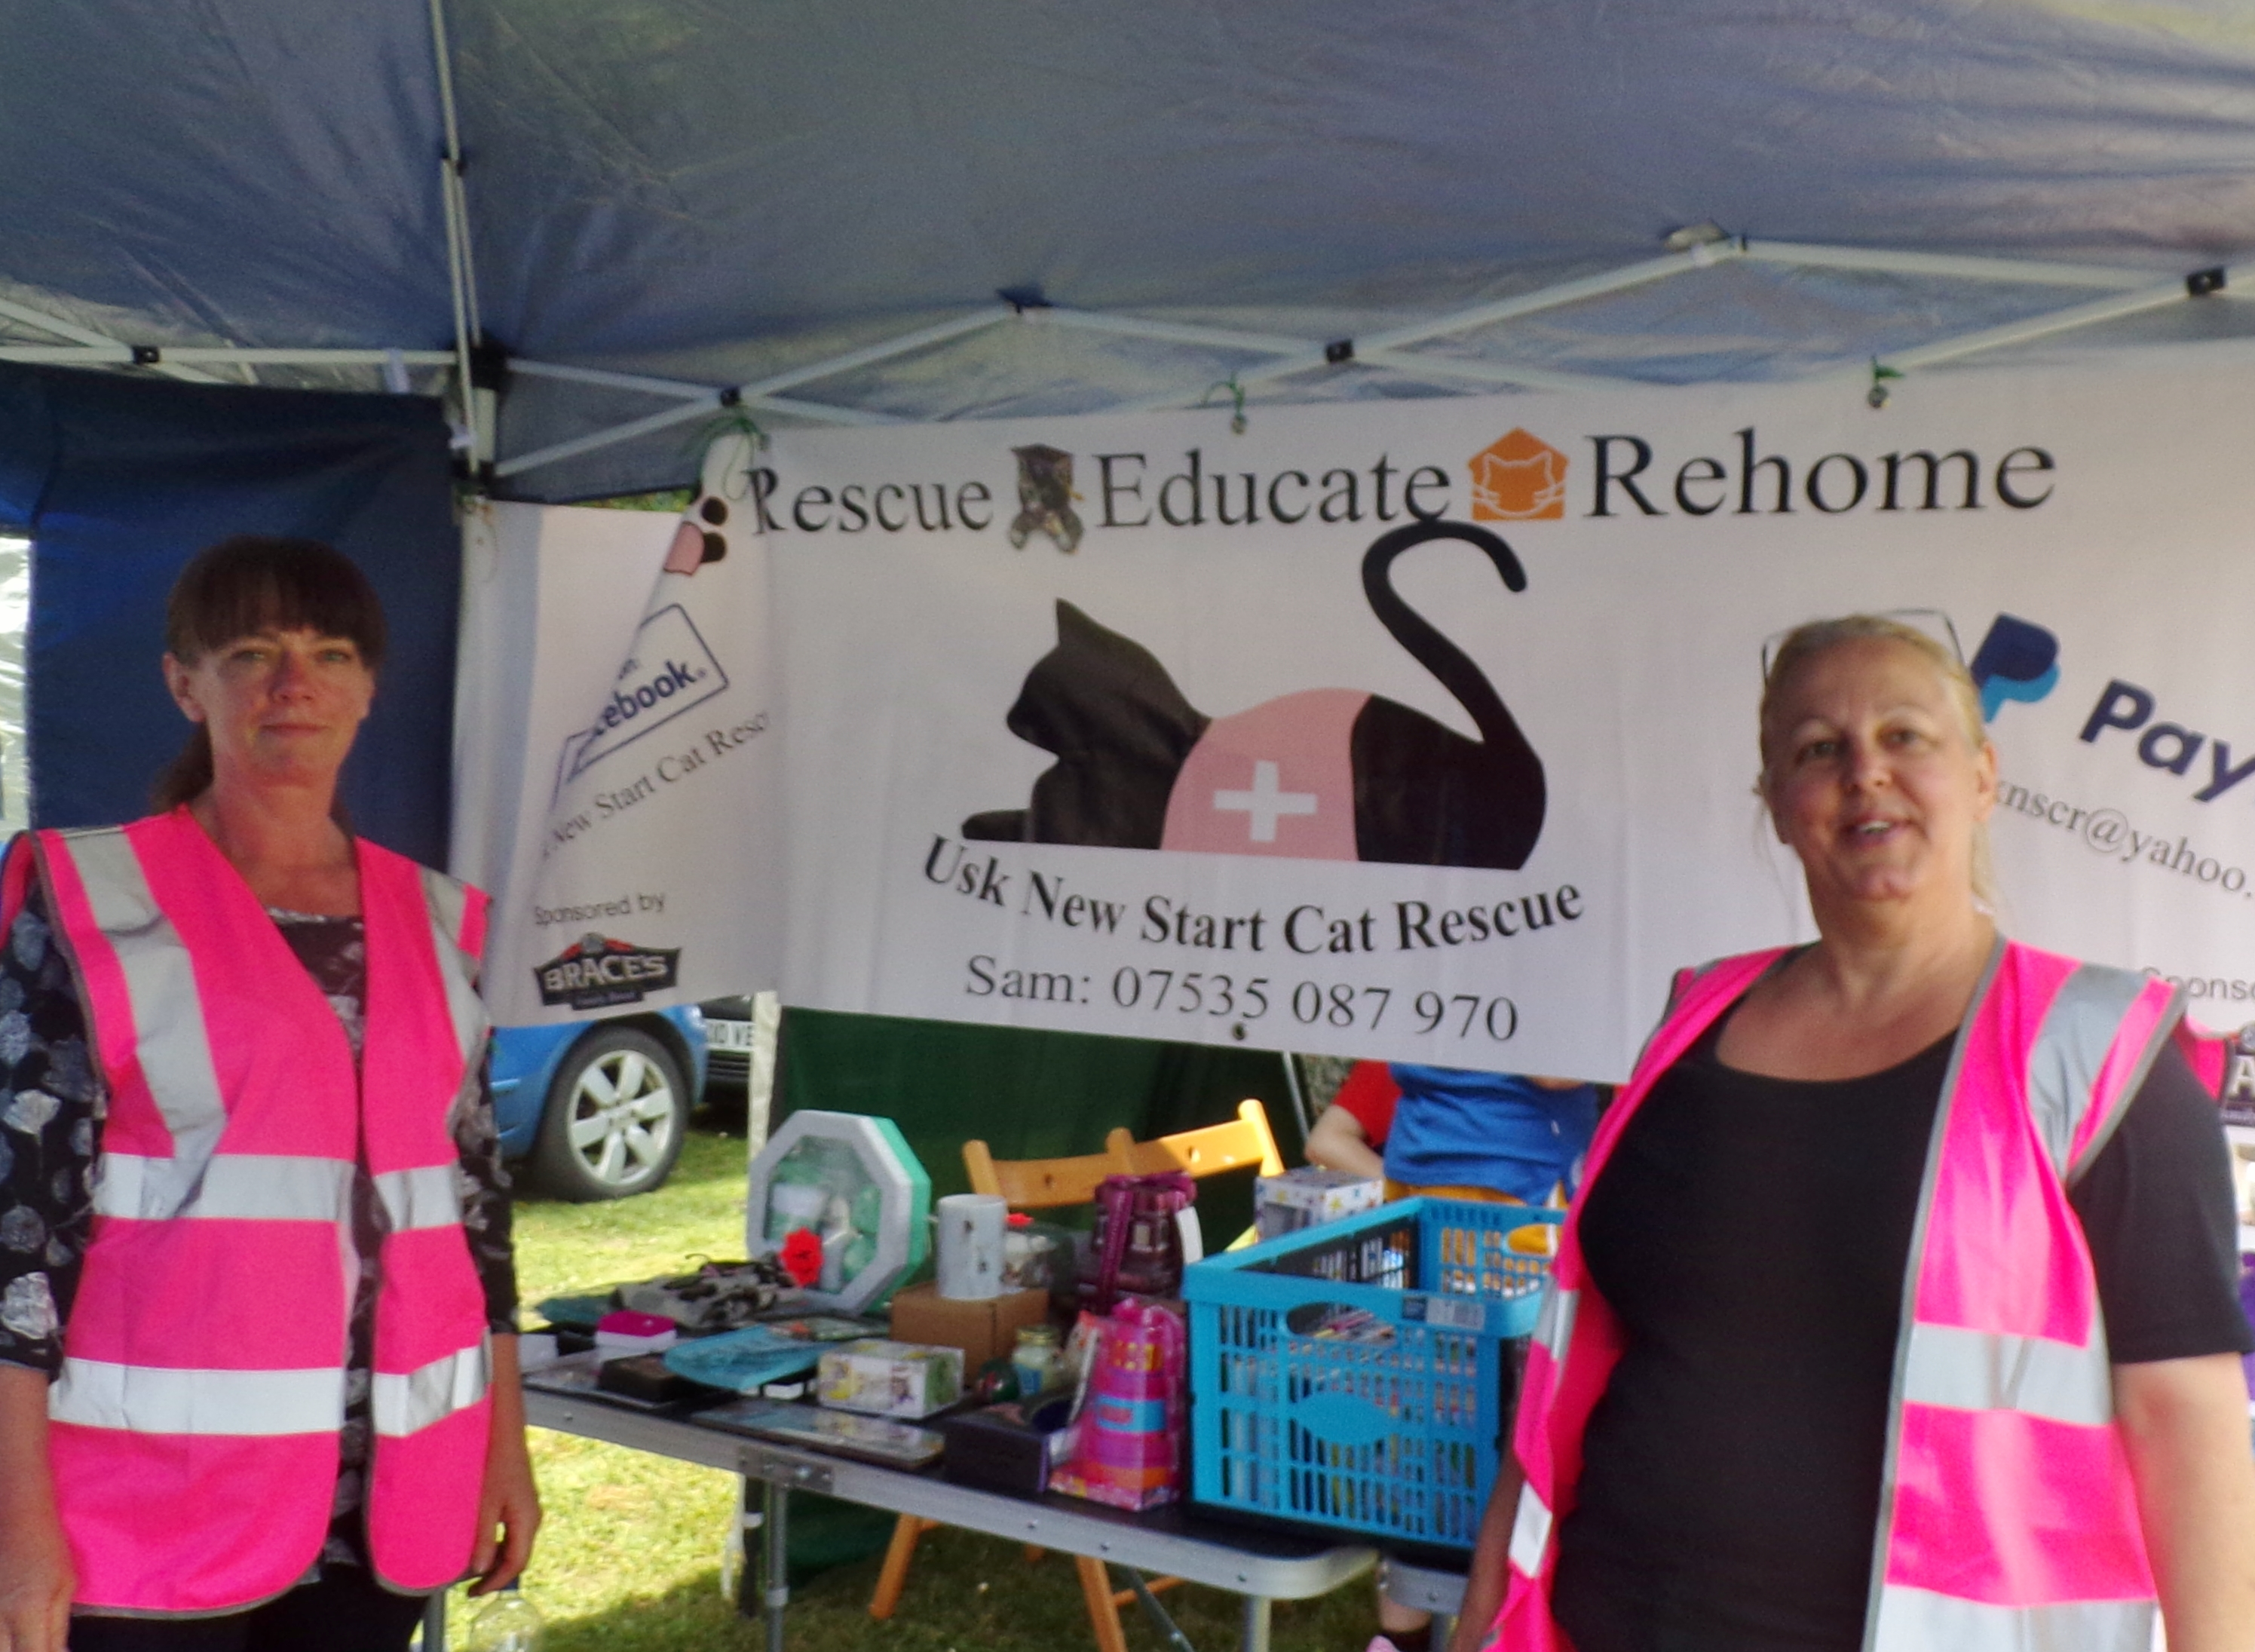 usk new start cat rescue stand